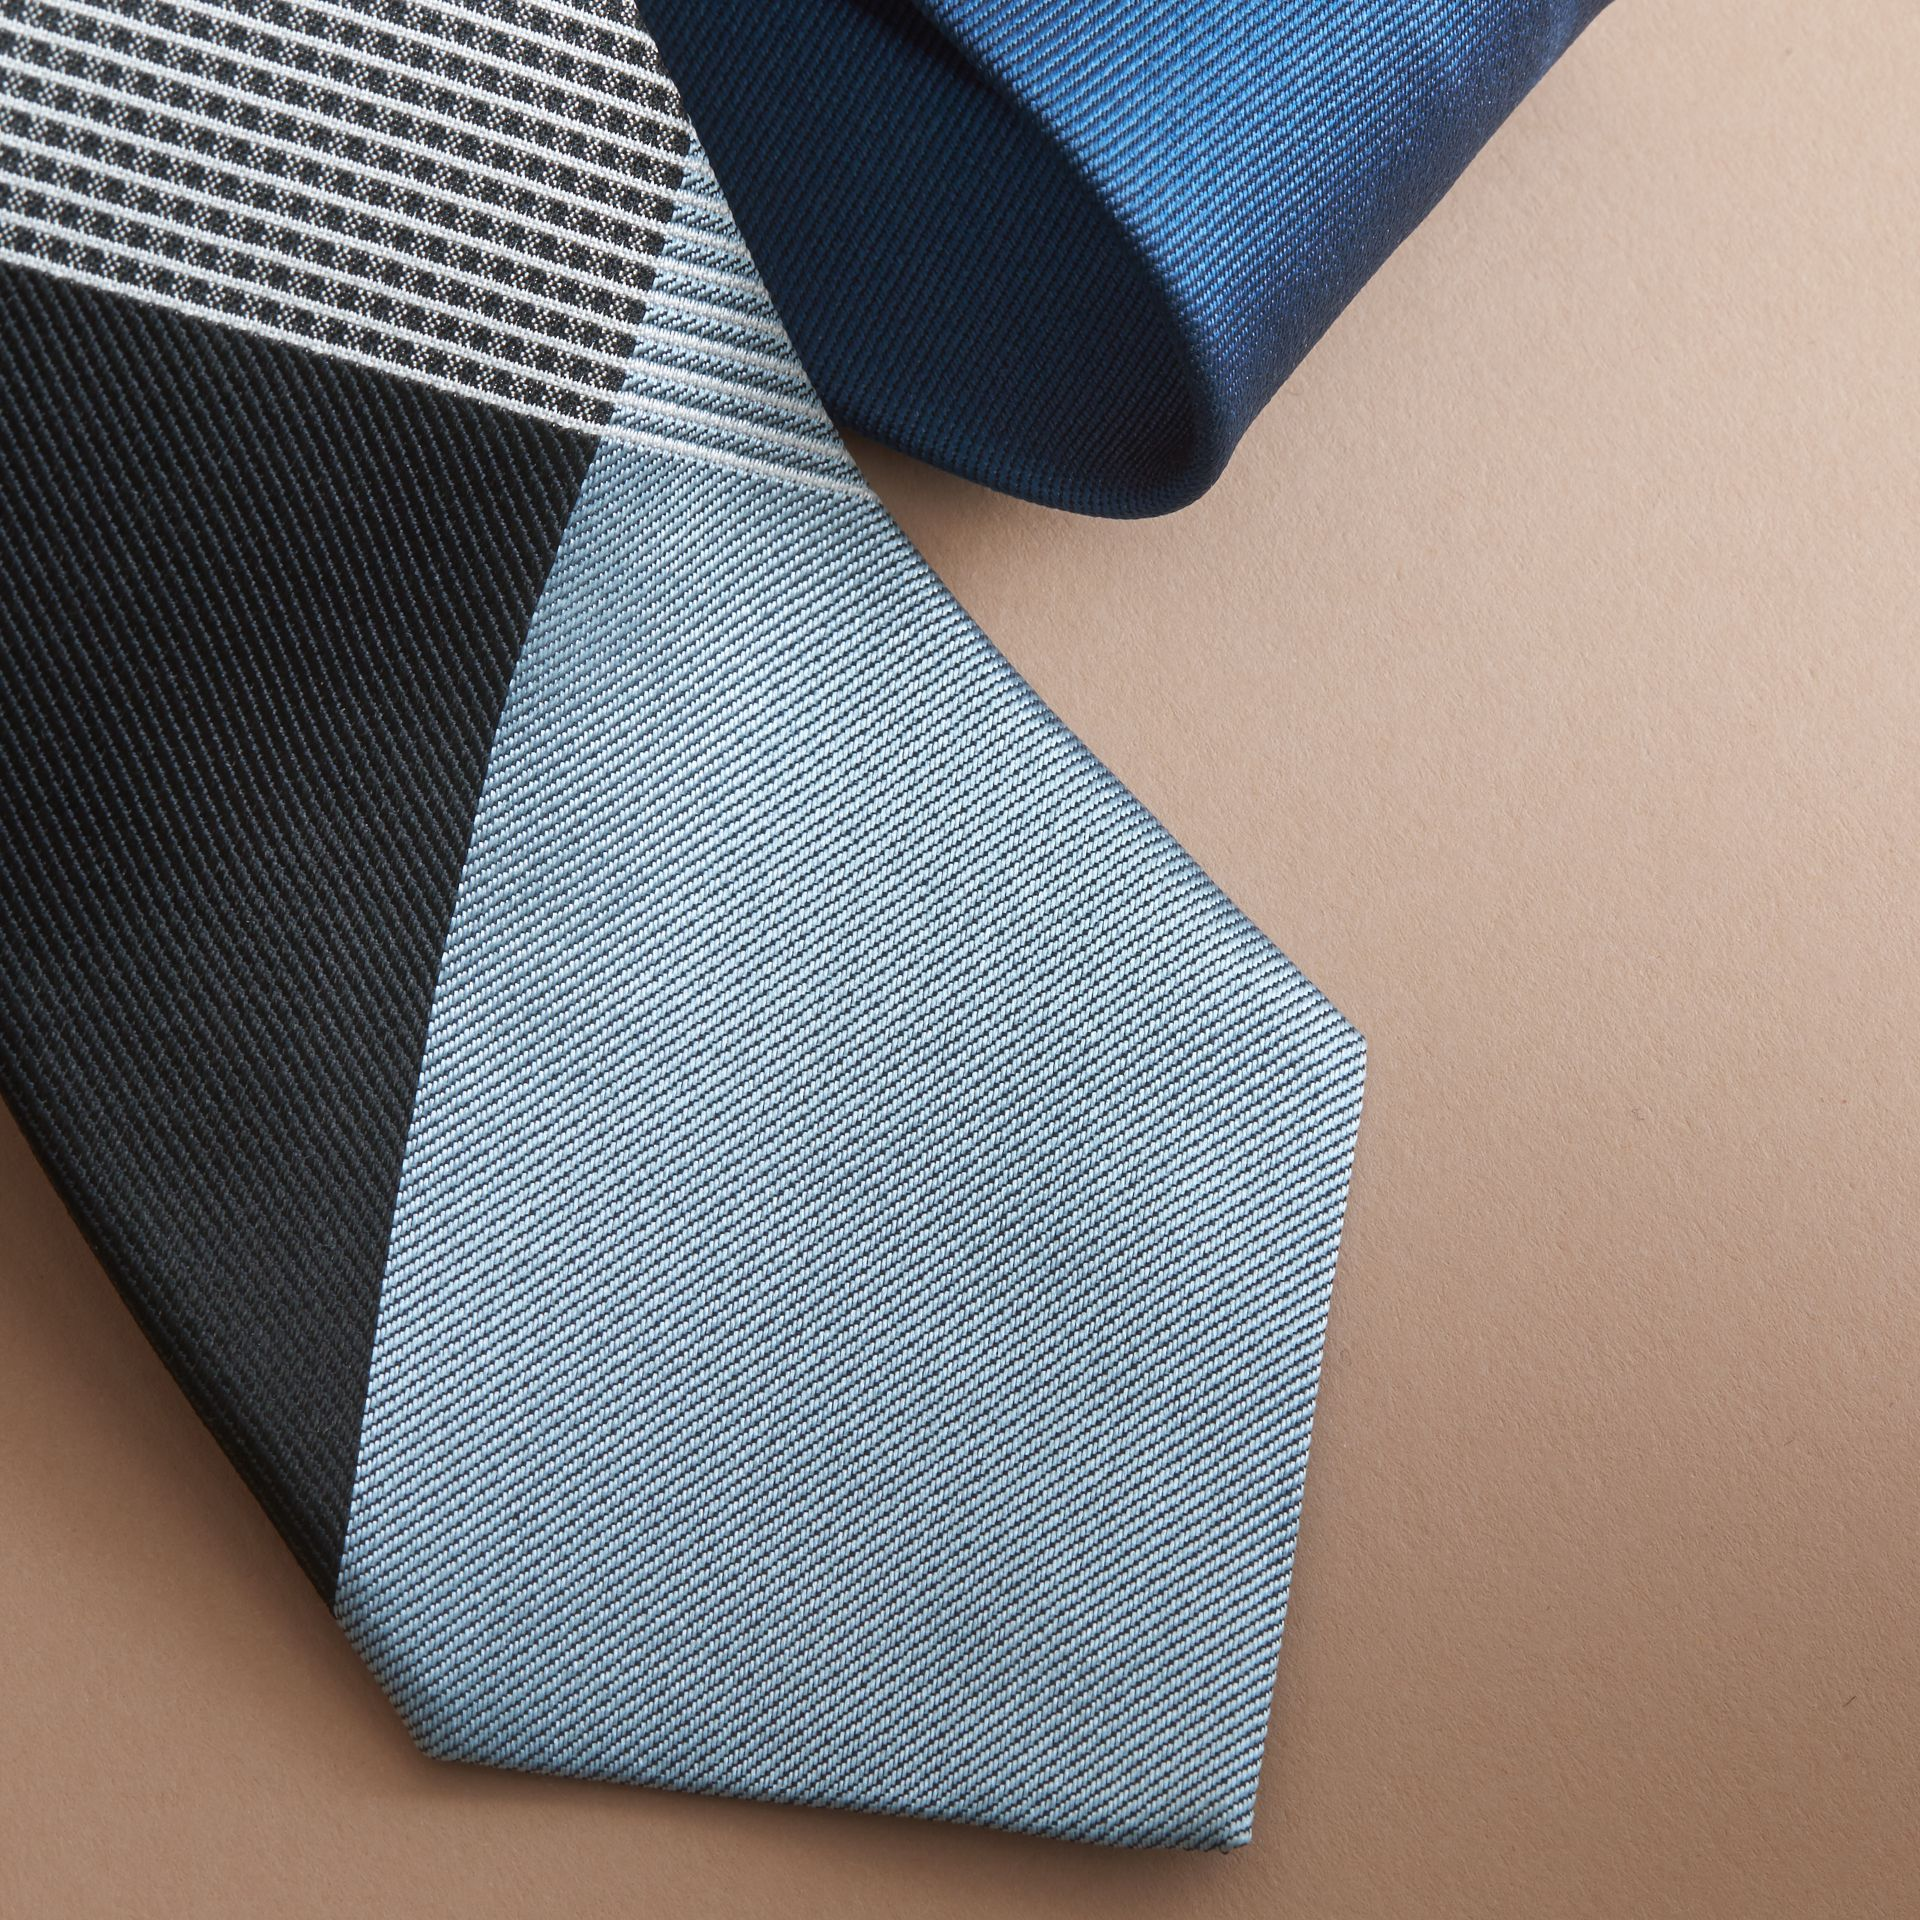 Modern Cut Gingham Check Silk Twill Jacquard Tie in Brilliant Navy - Men | Burberry - gallery image 1